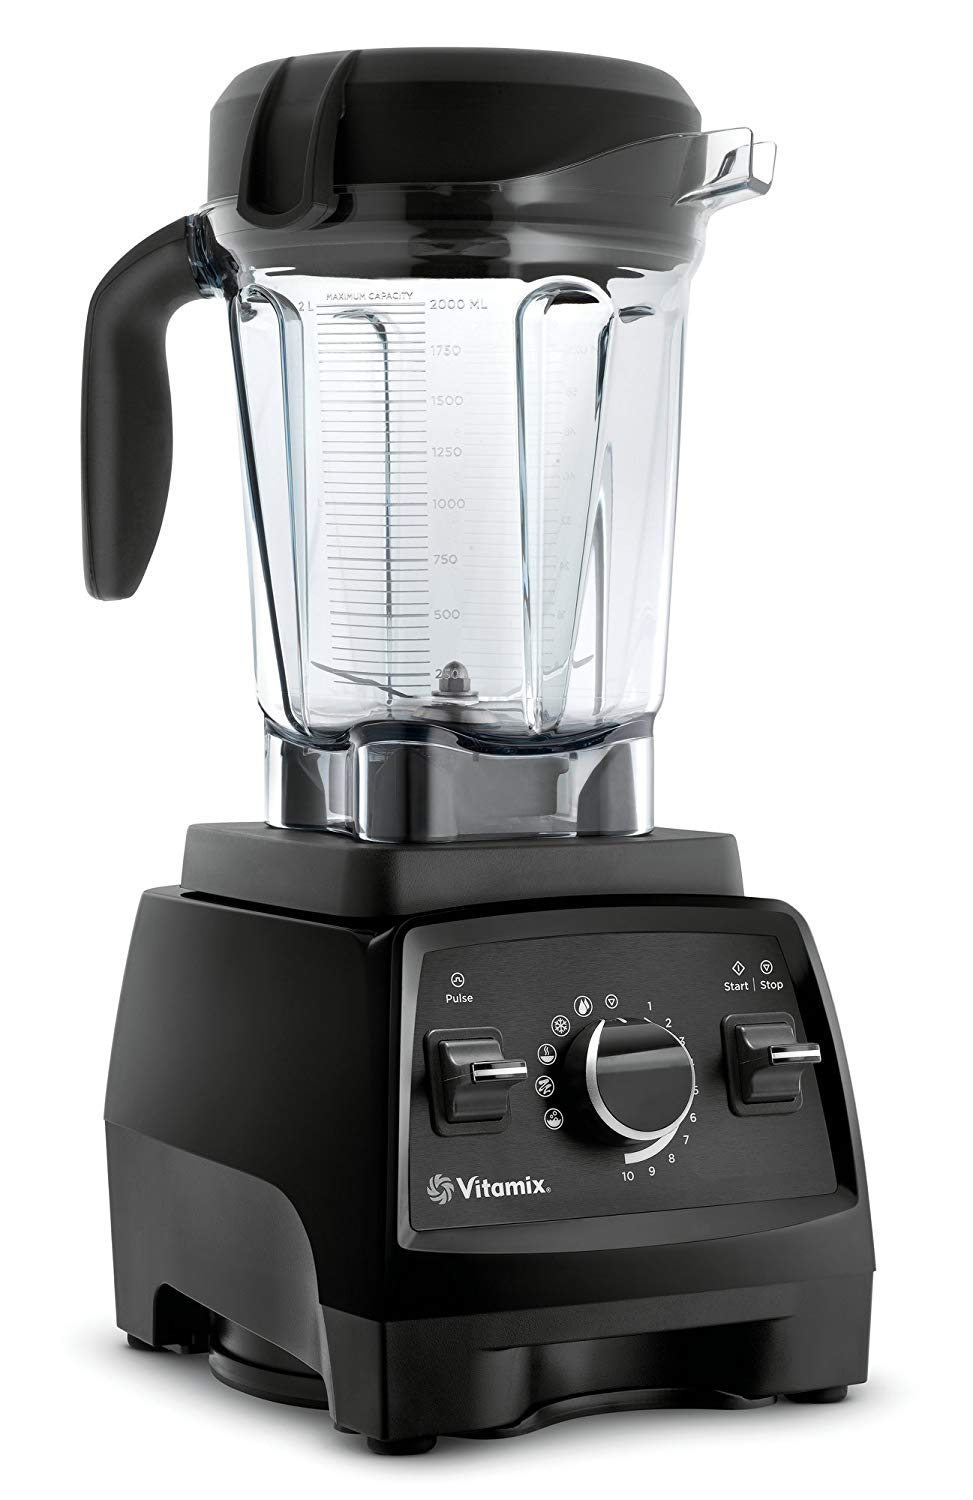 how to clean cloudy vitamix container of the 750 series vitamix professional blender